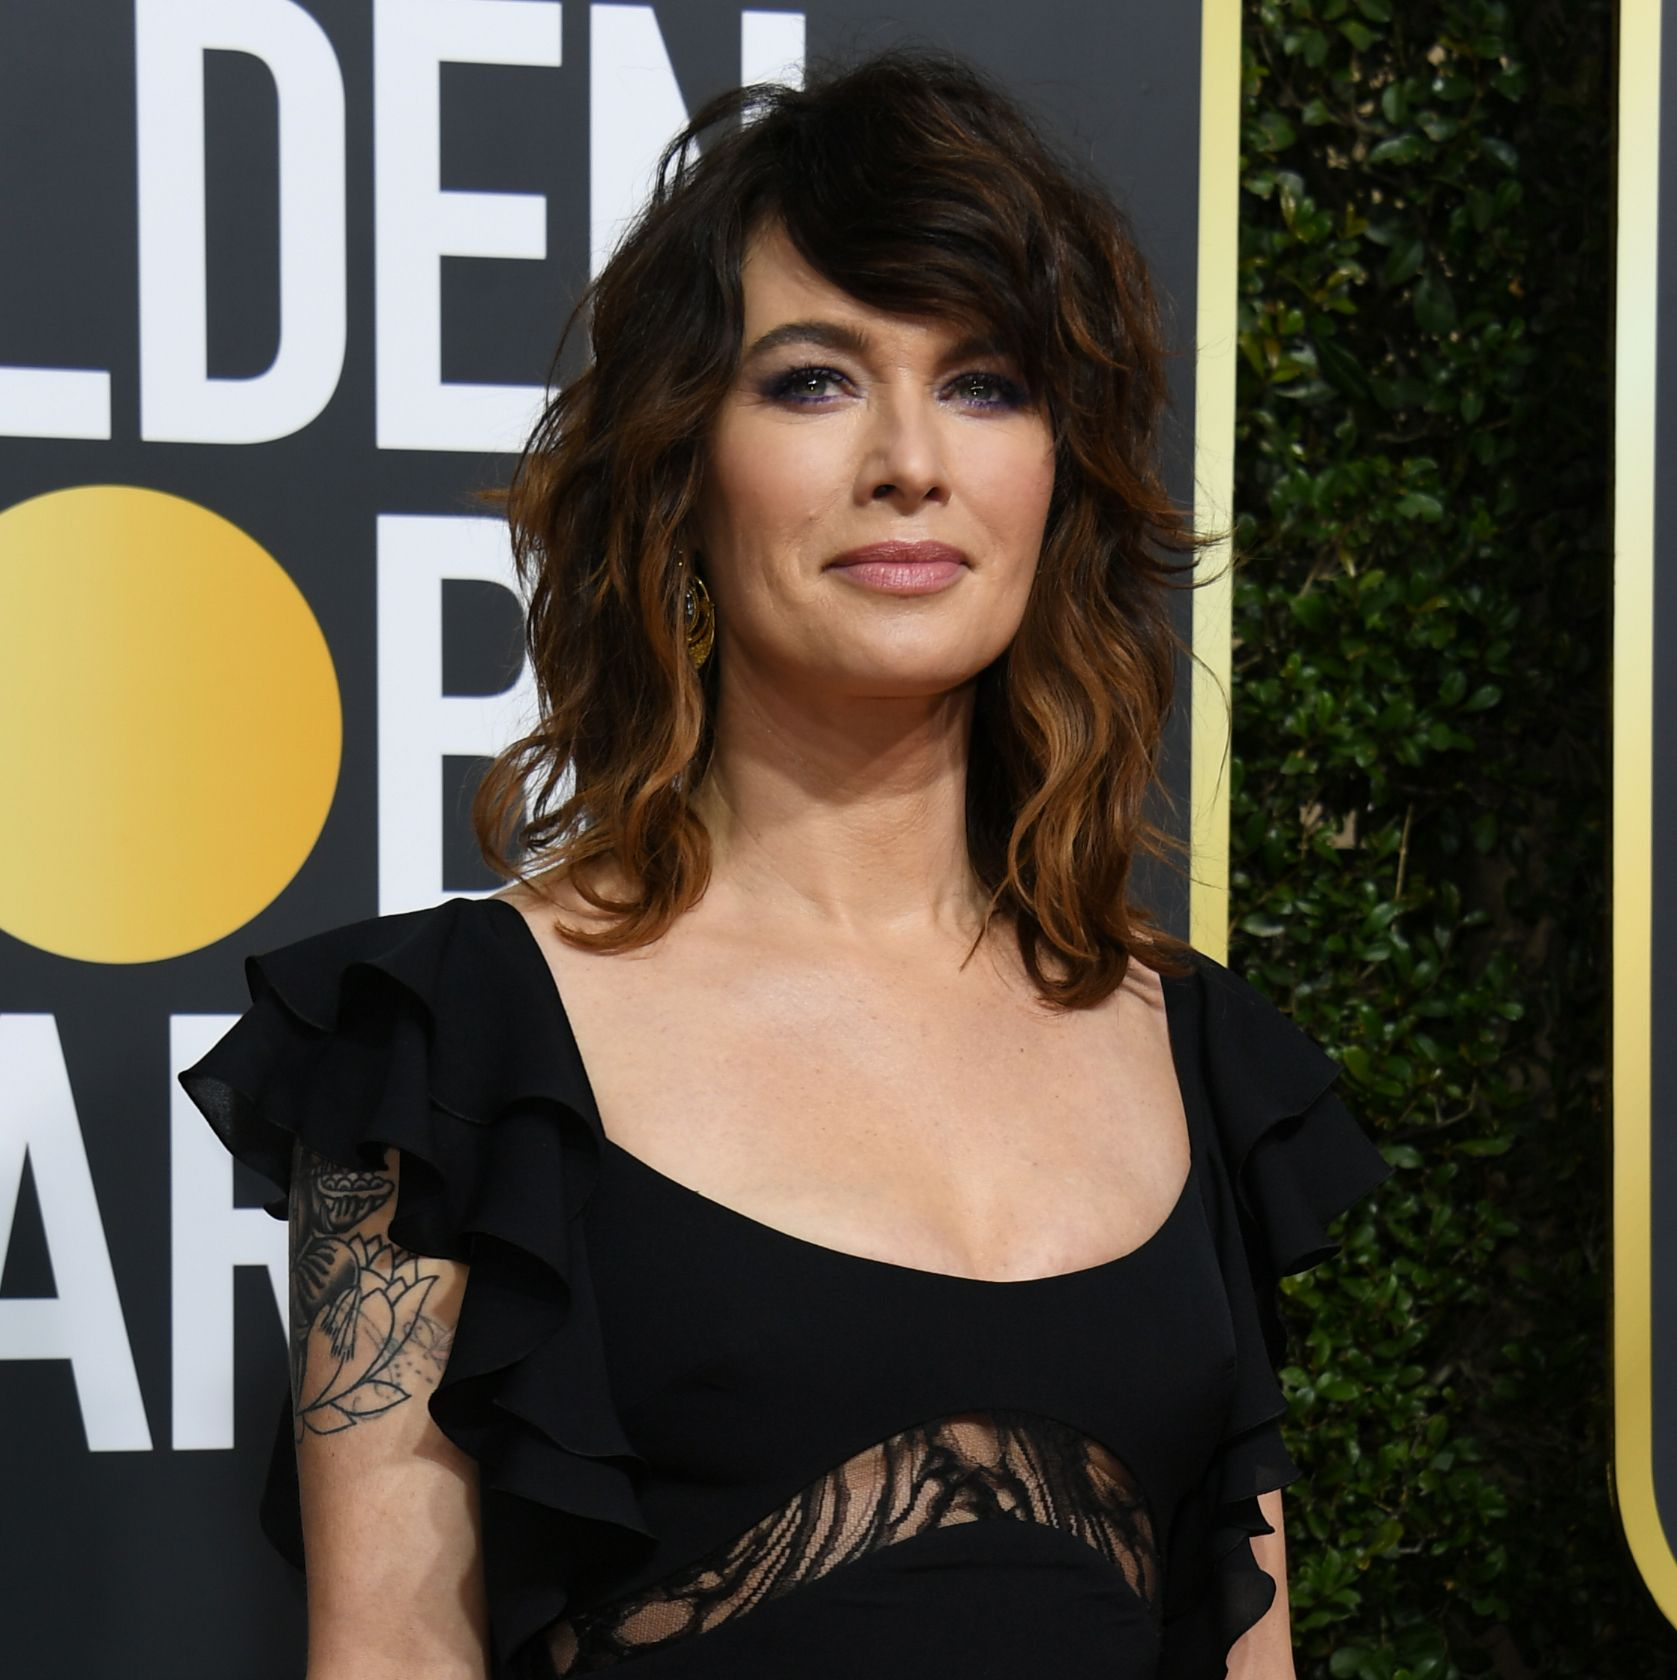 Game of Thrones Atar Lena Headey Says Refusing Sex With Harvey Weinstein Hurt Her Career For A Decade